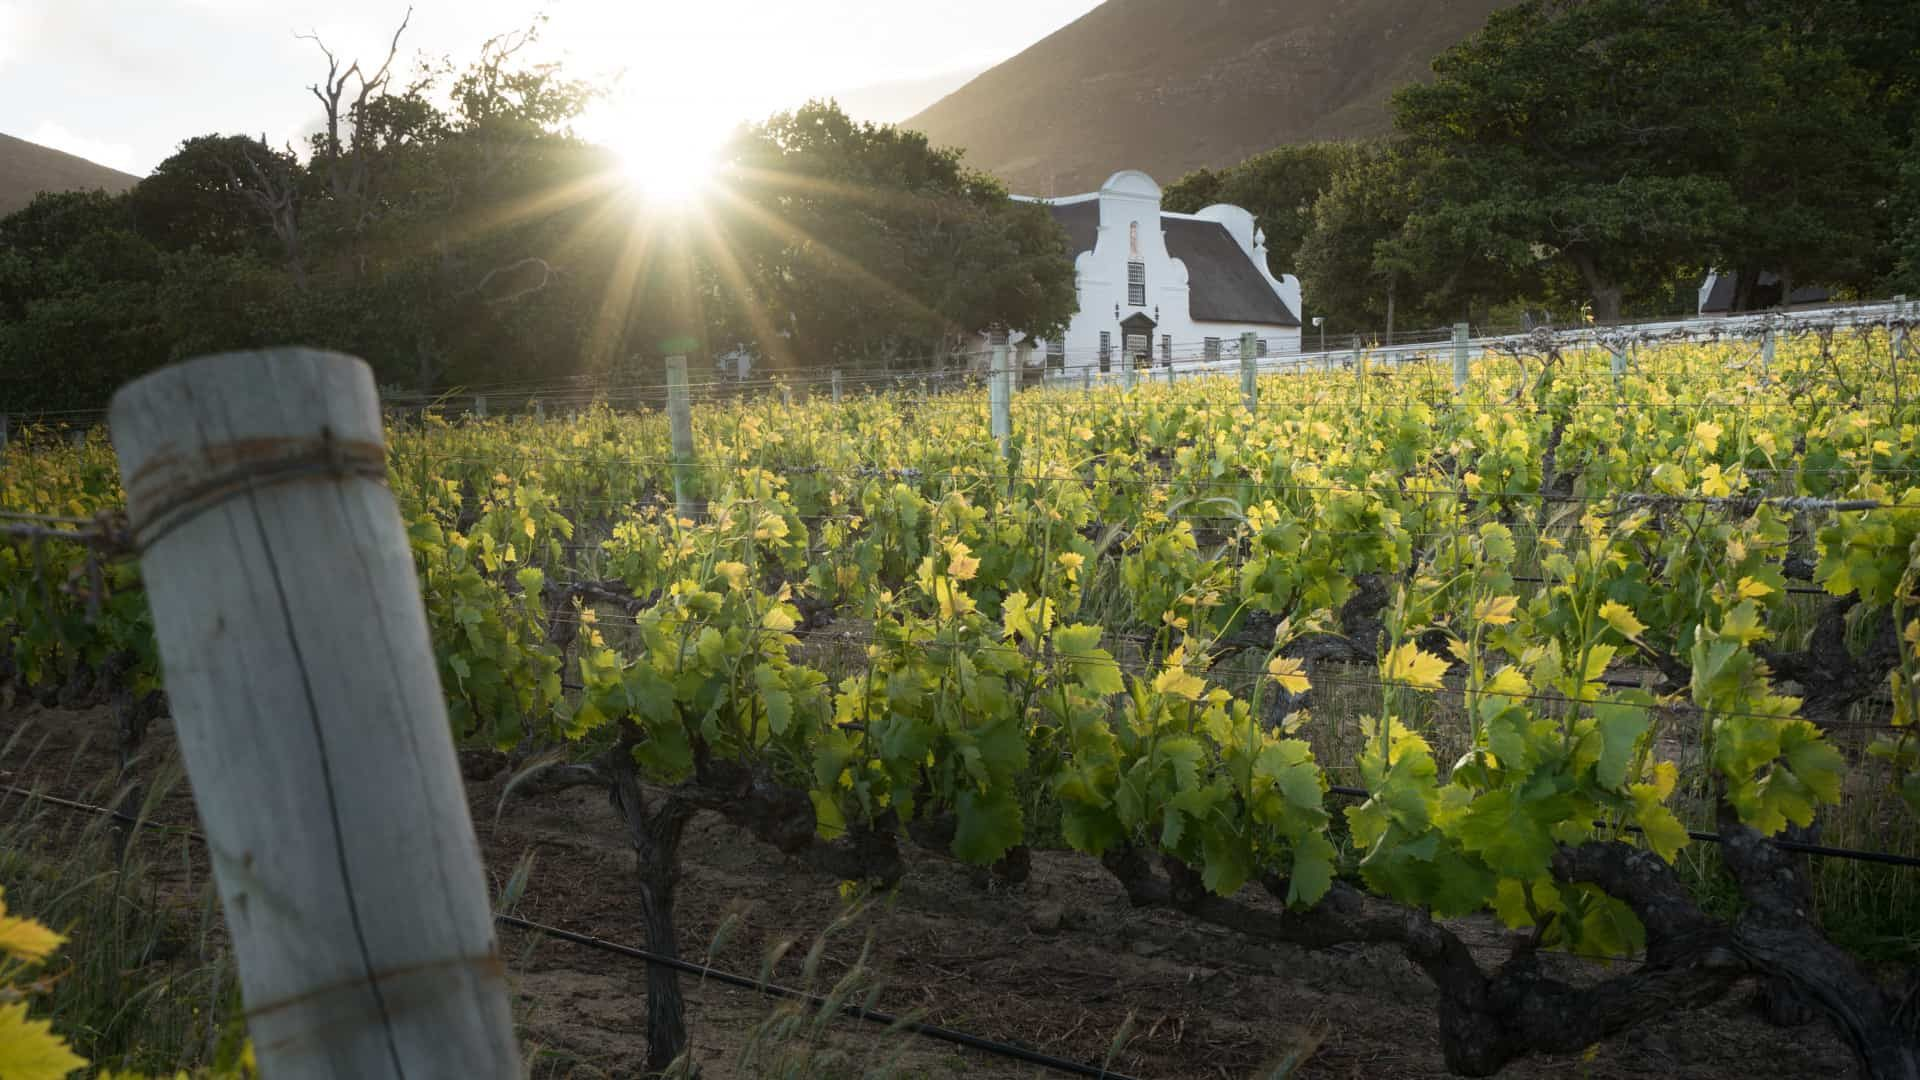 groot-constantia-wine-farm.jpeg